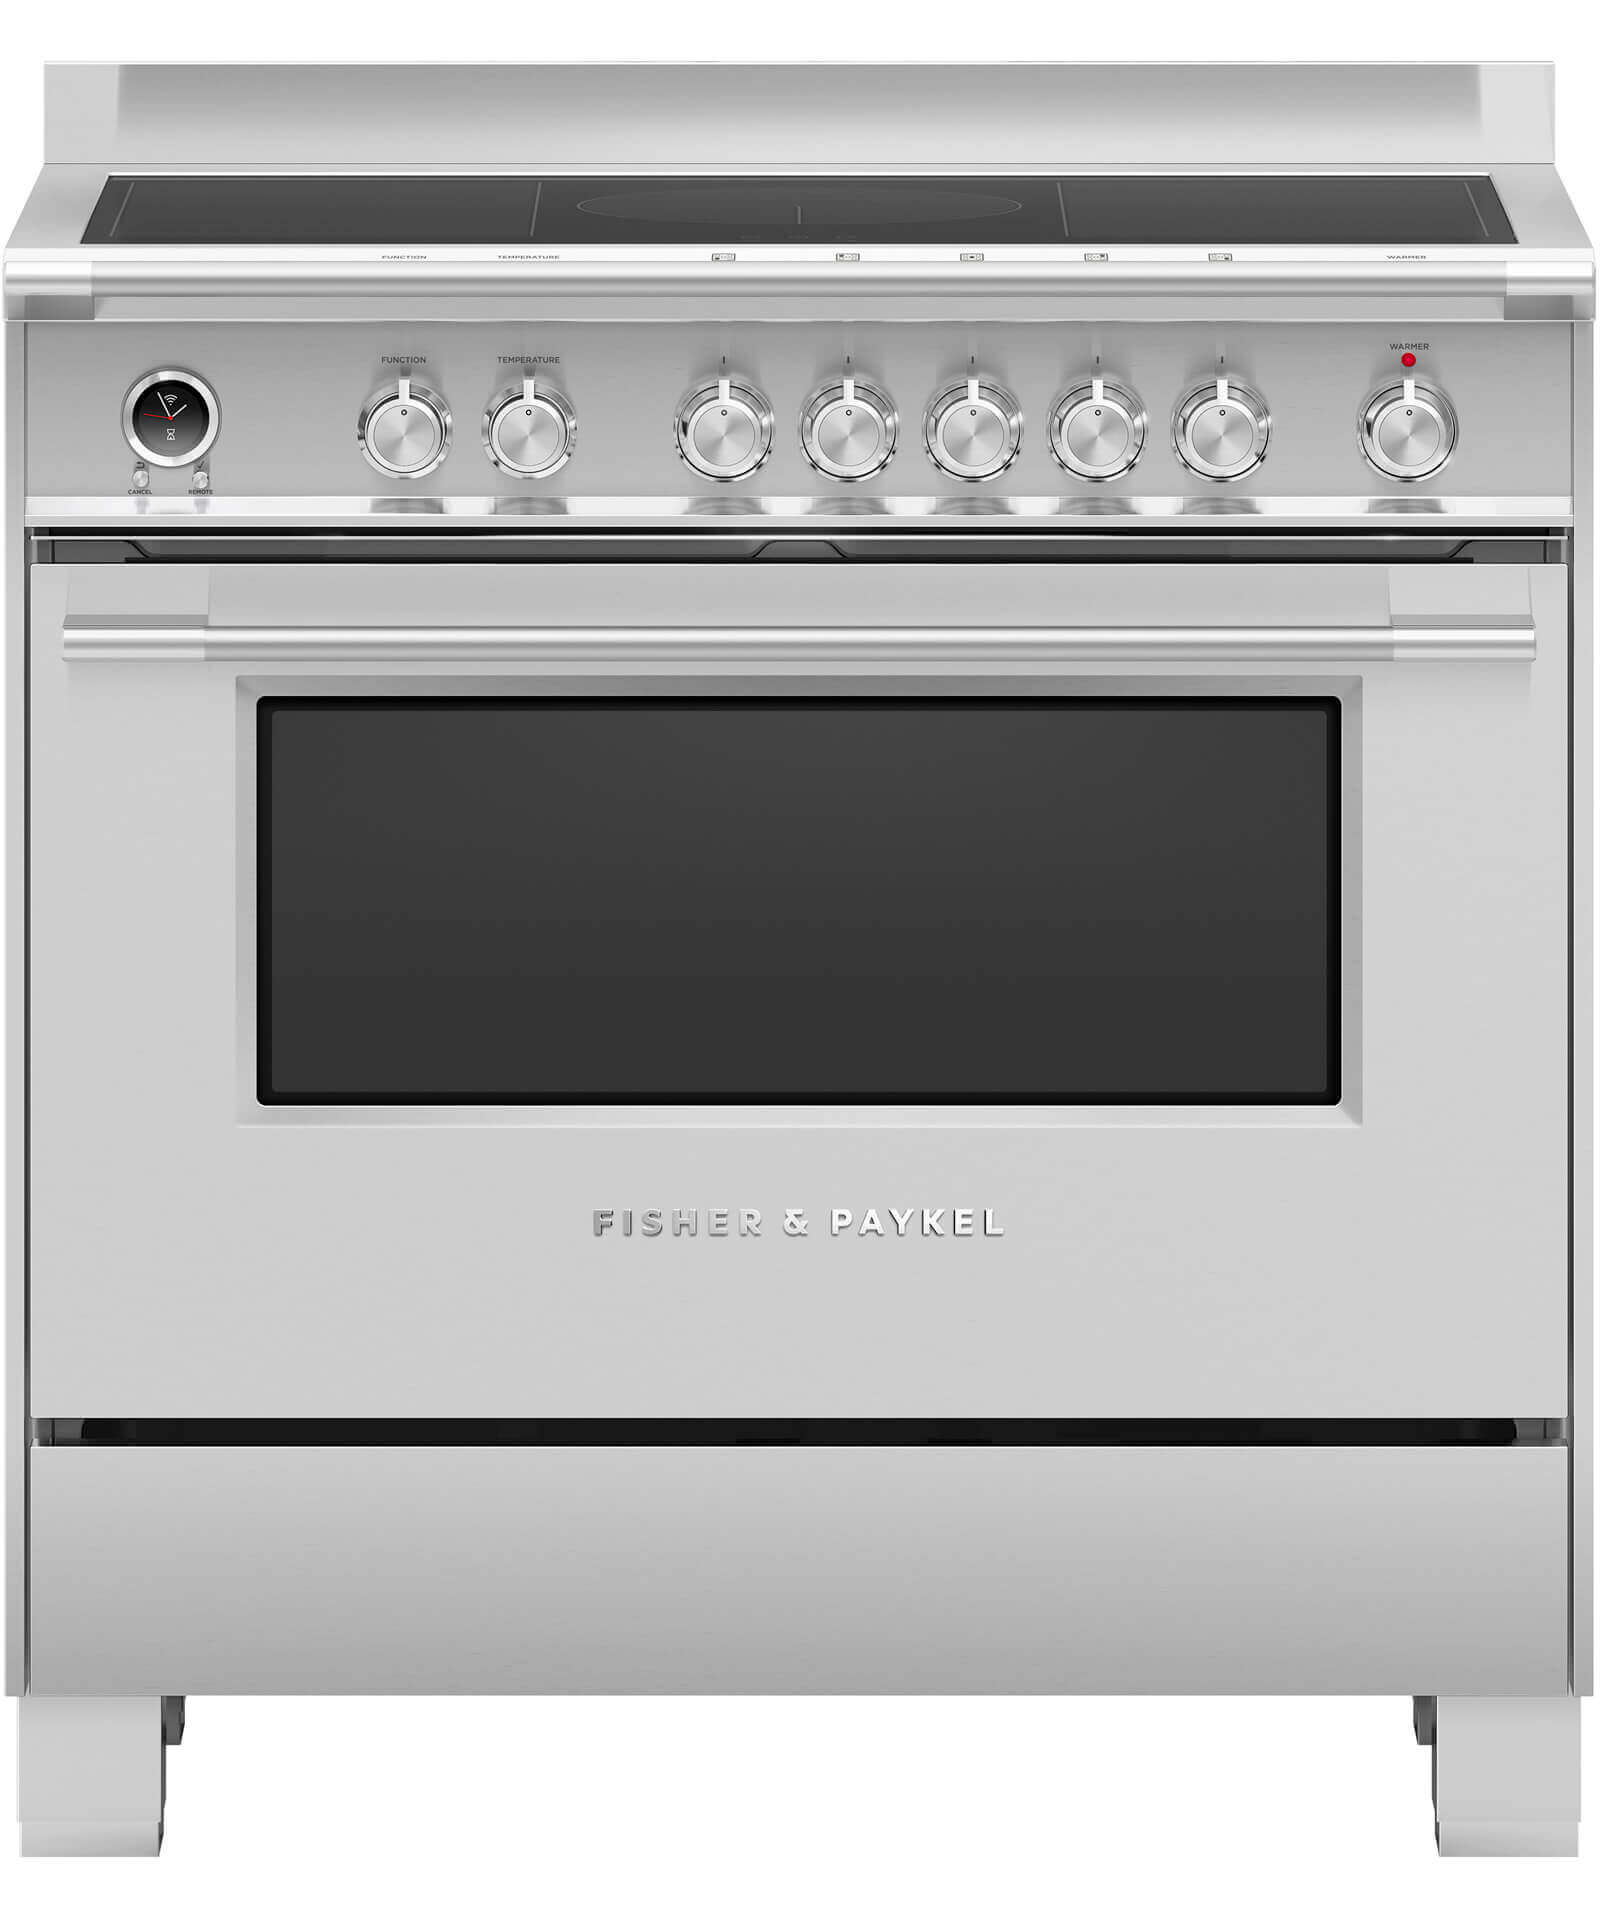 Classic Cuisine Induction Cooker Instructions Or90sci6x1 Freestanding Induction Cooker 90cm Fisher